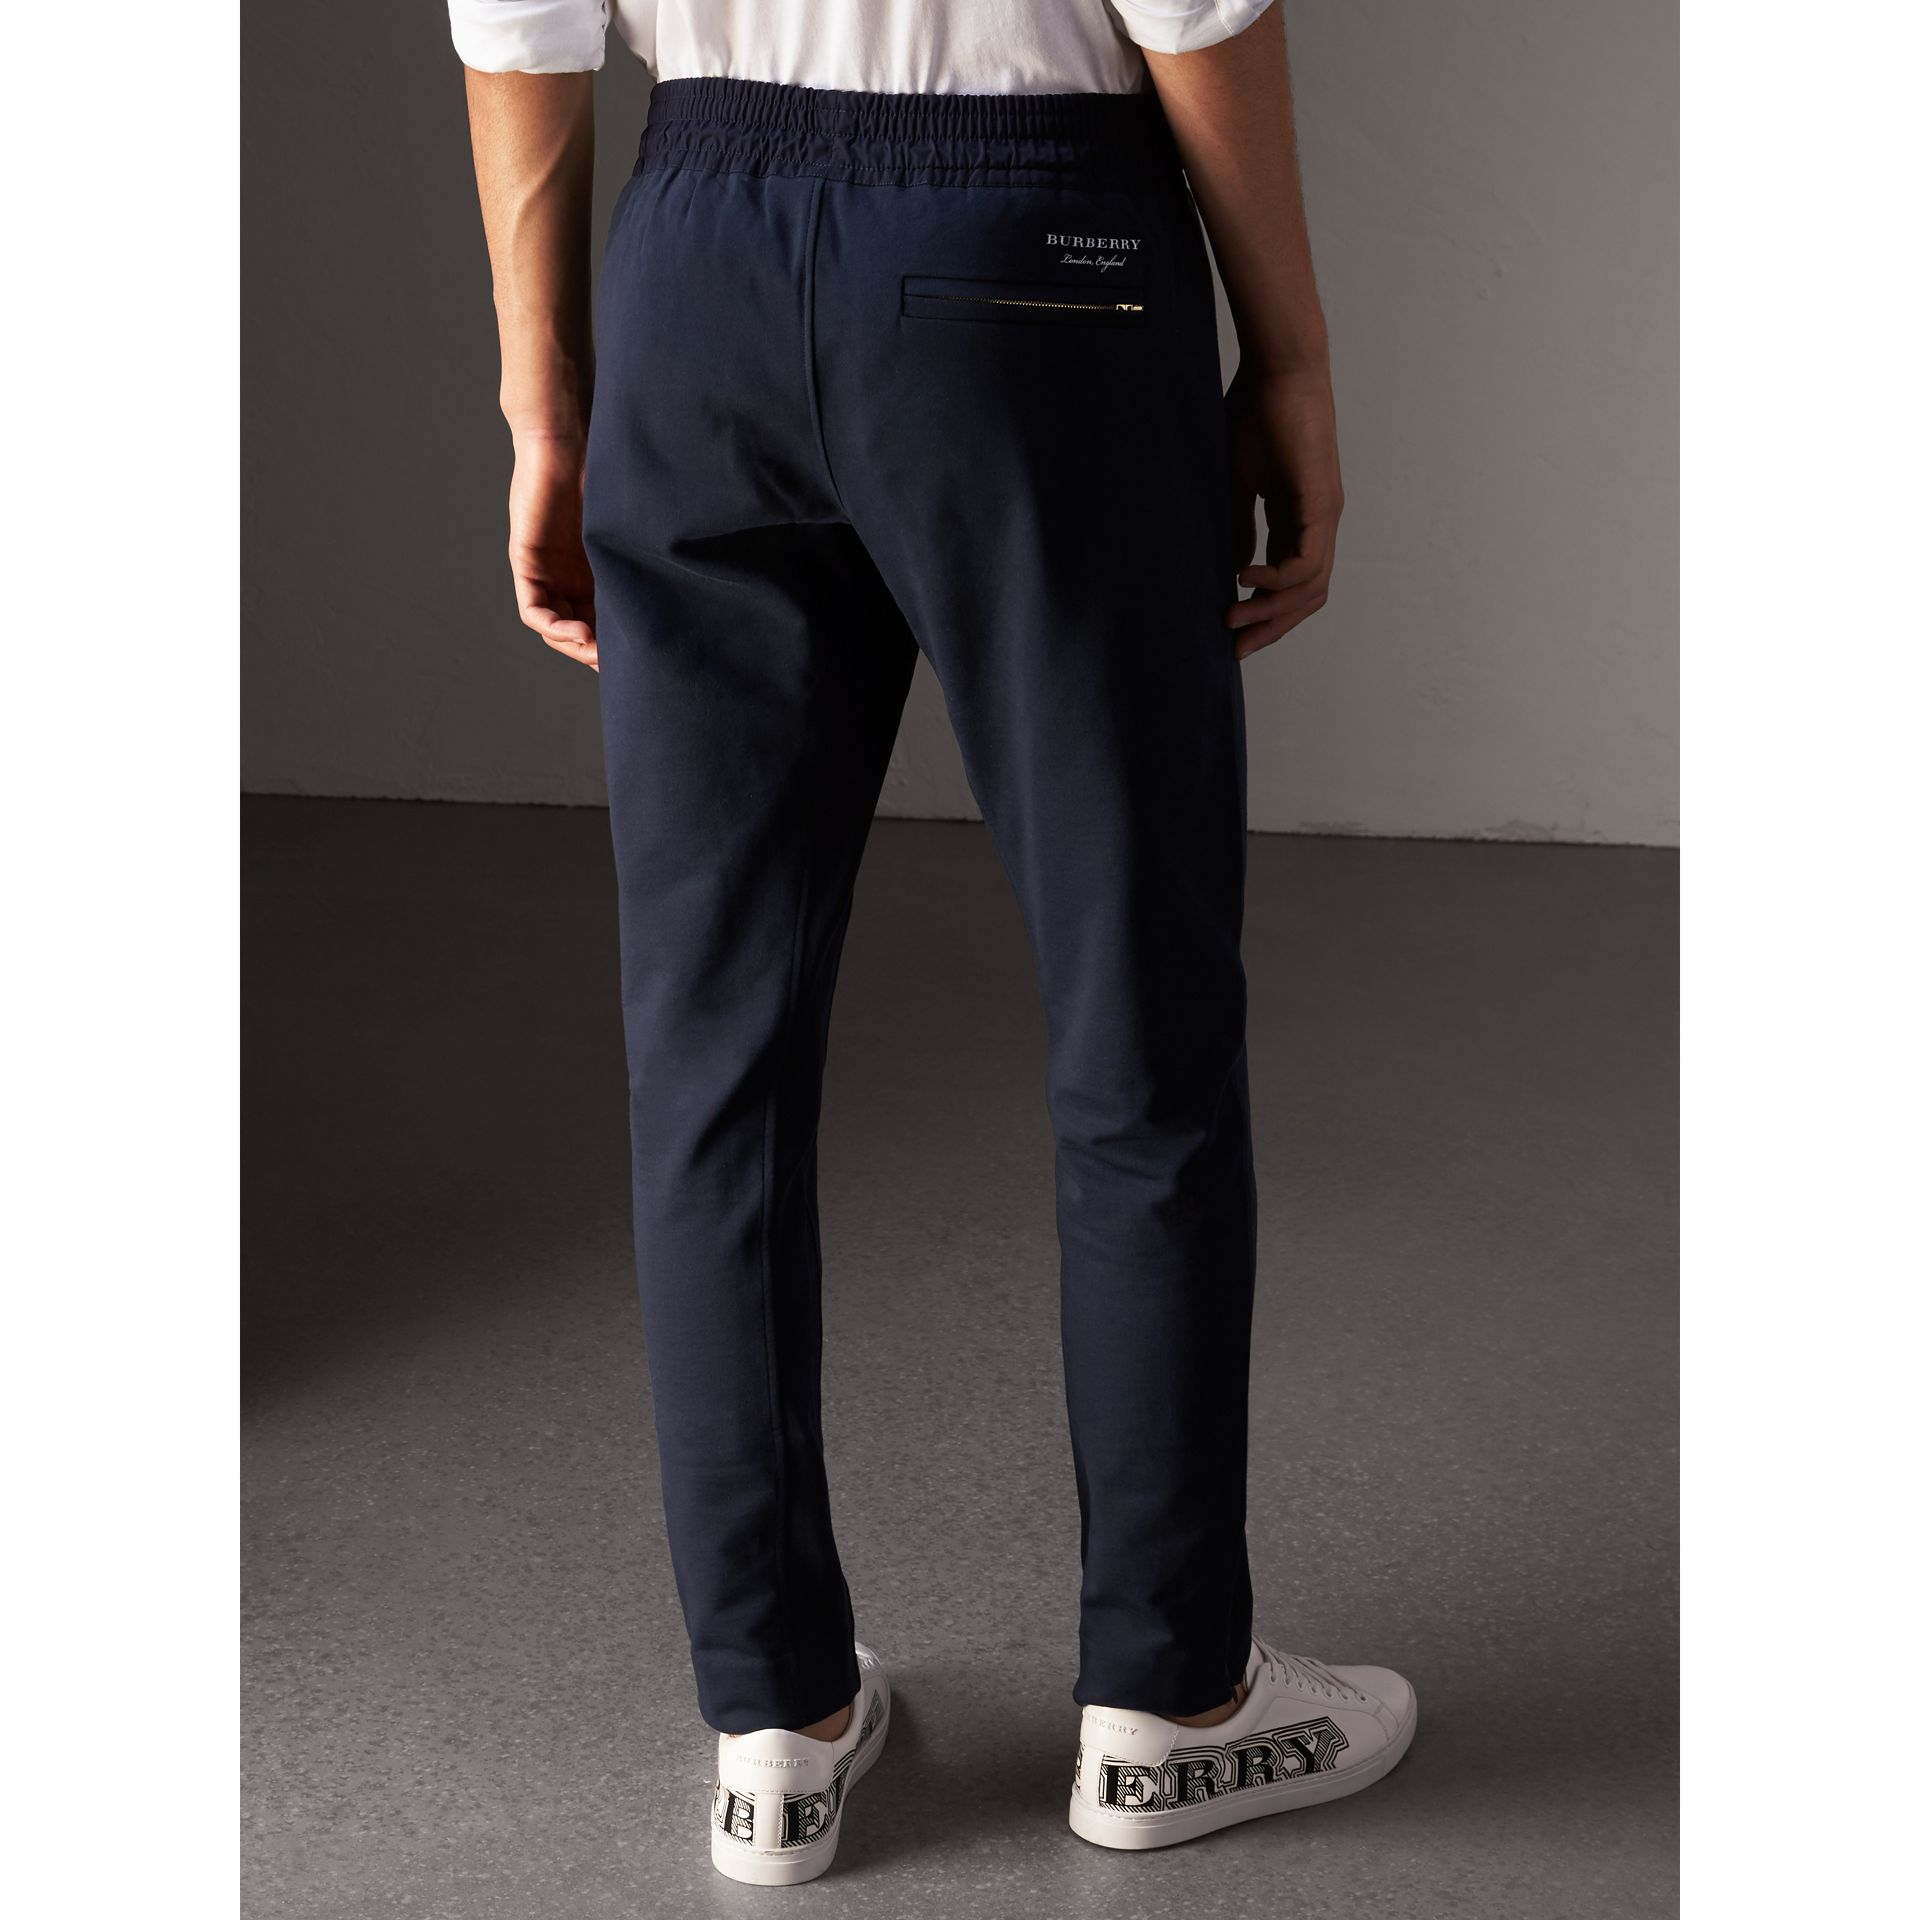 Pantalon de survêtement en coton (Marine) - Homme | Burberry - photo de la galerie 2